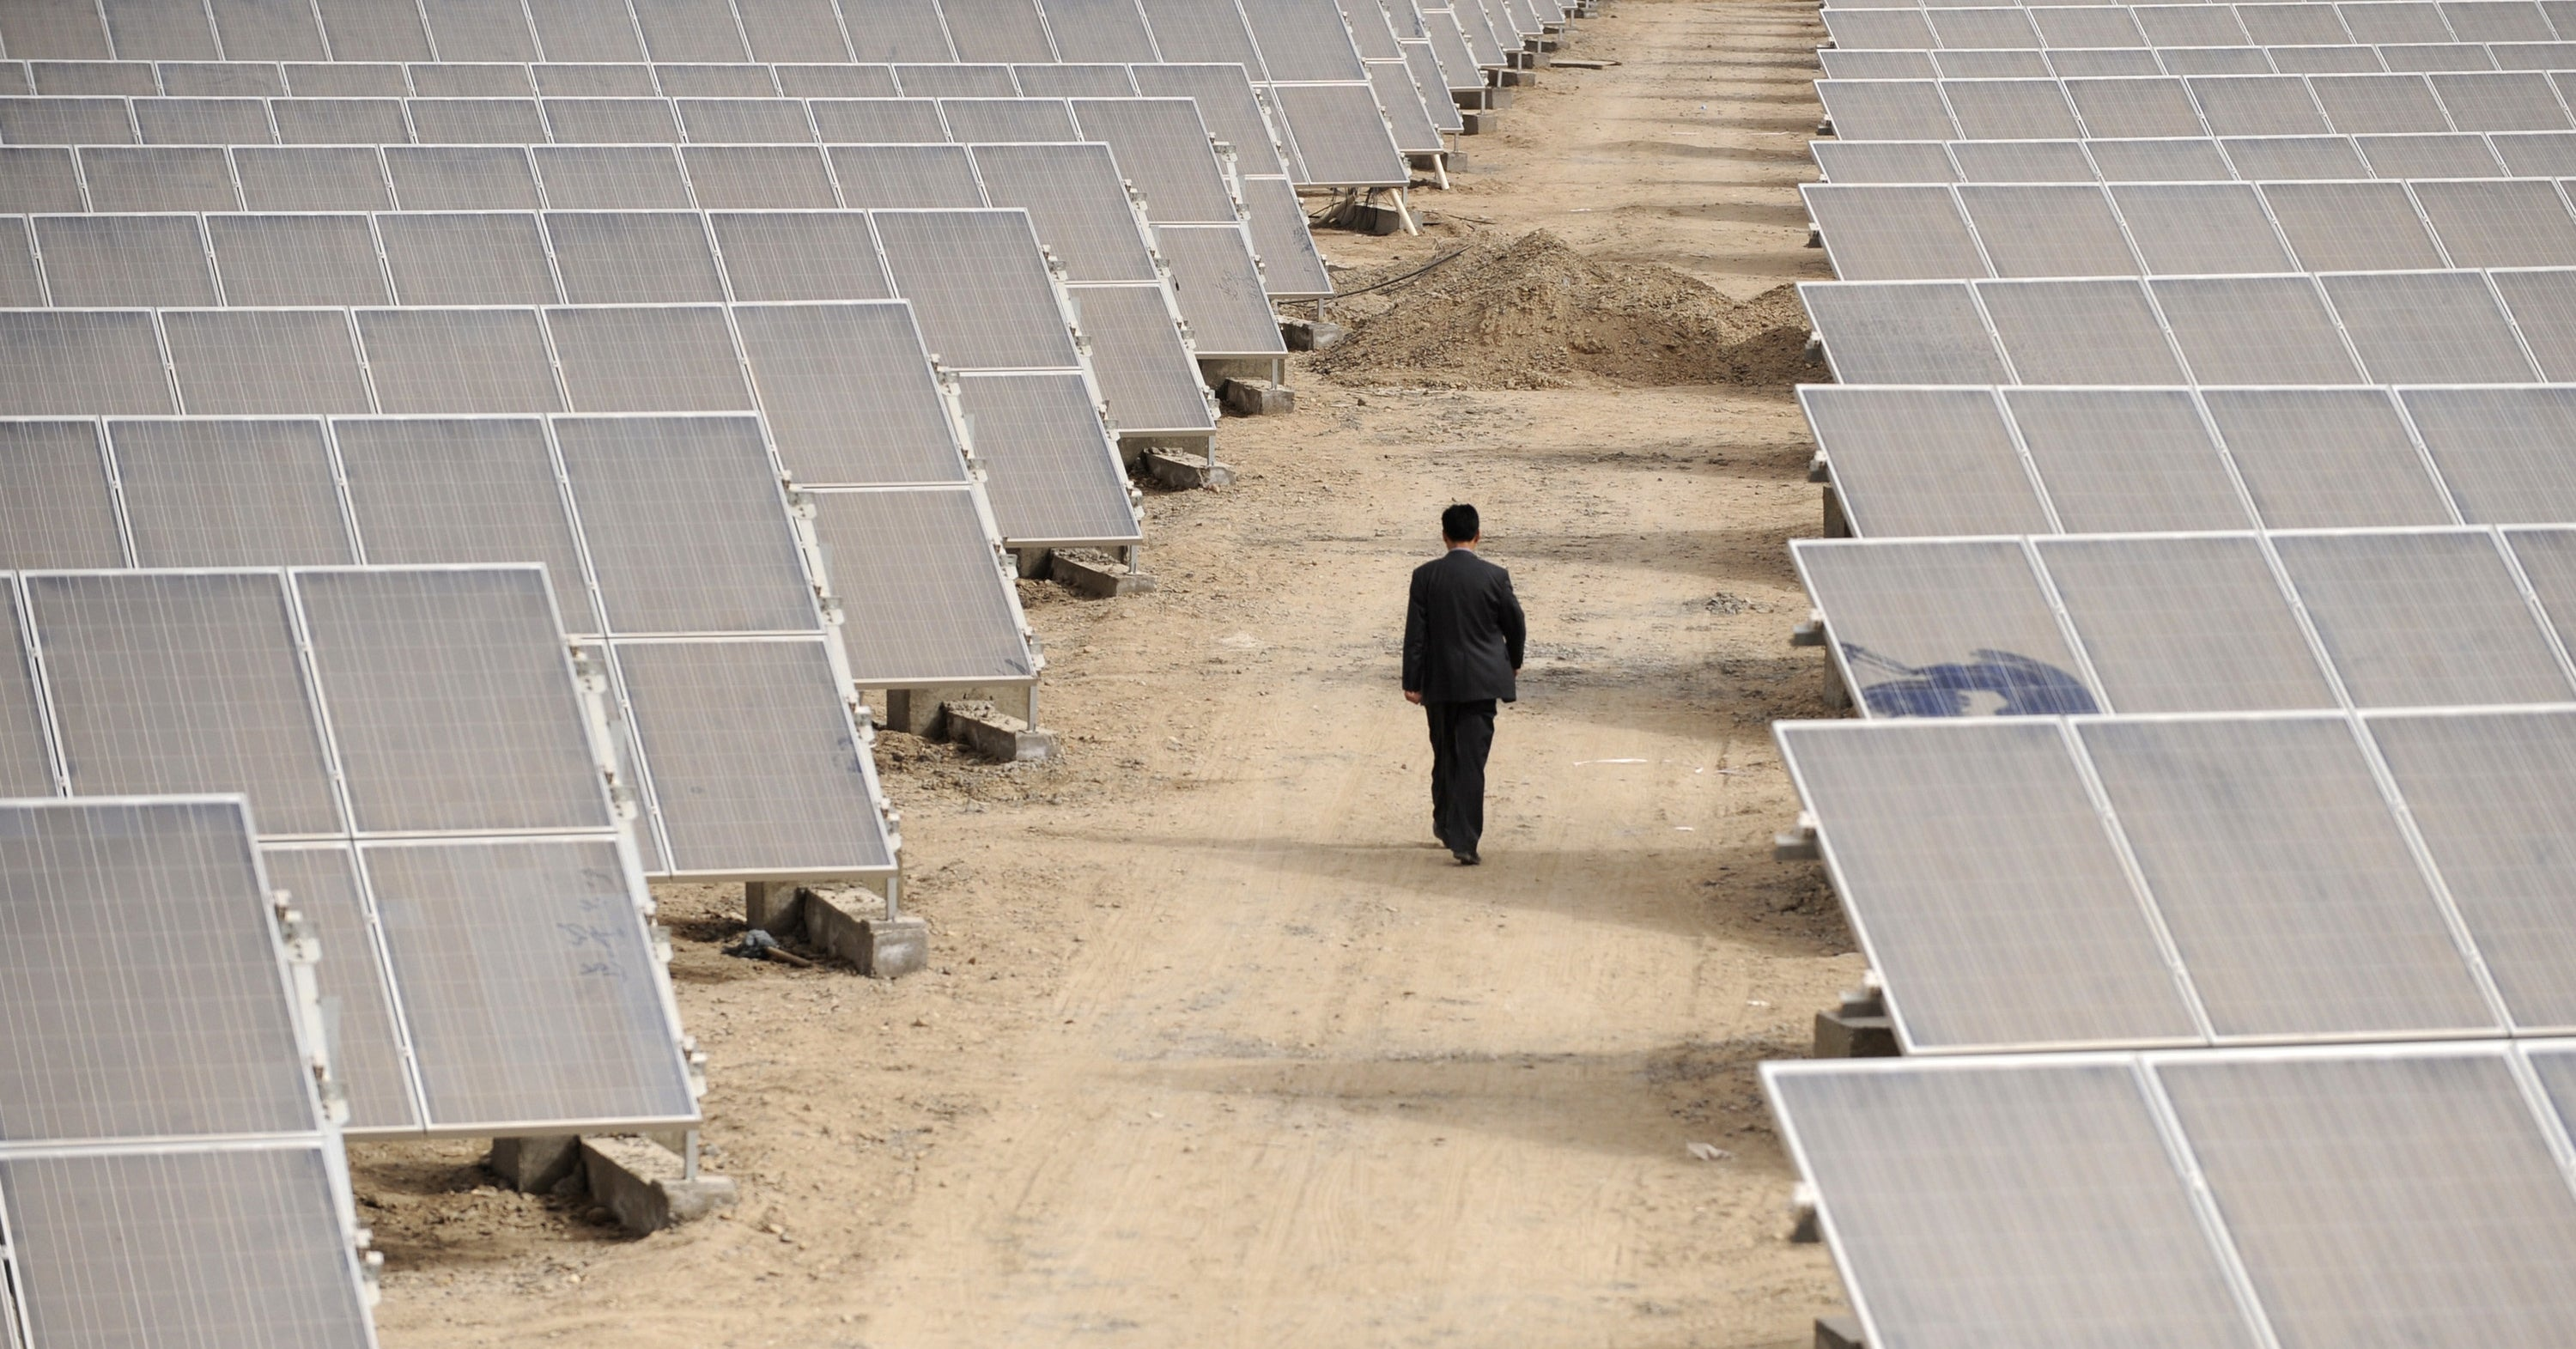 US Solar Companies Rely On Materials From Xinjiang, Where Forced Labor Is Rampant